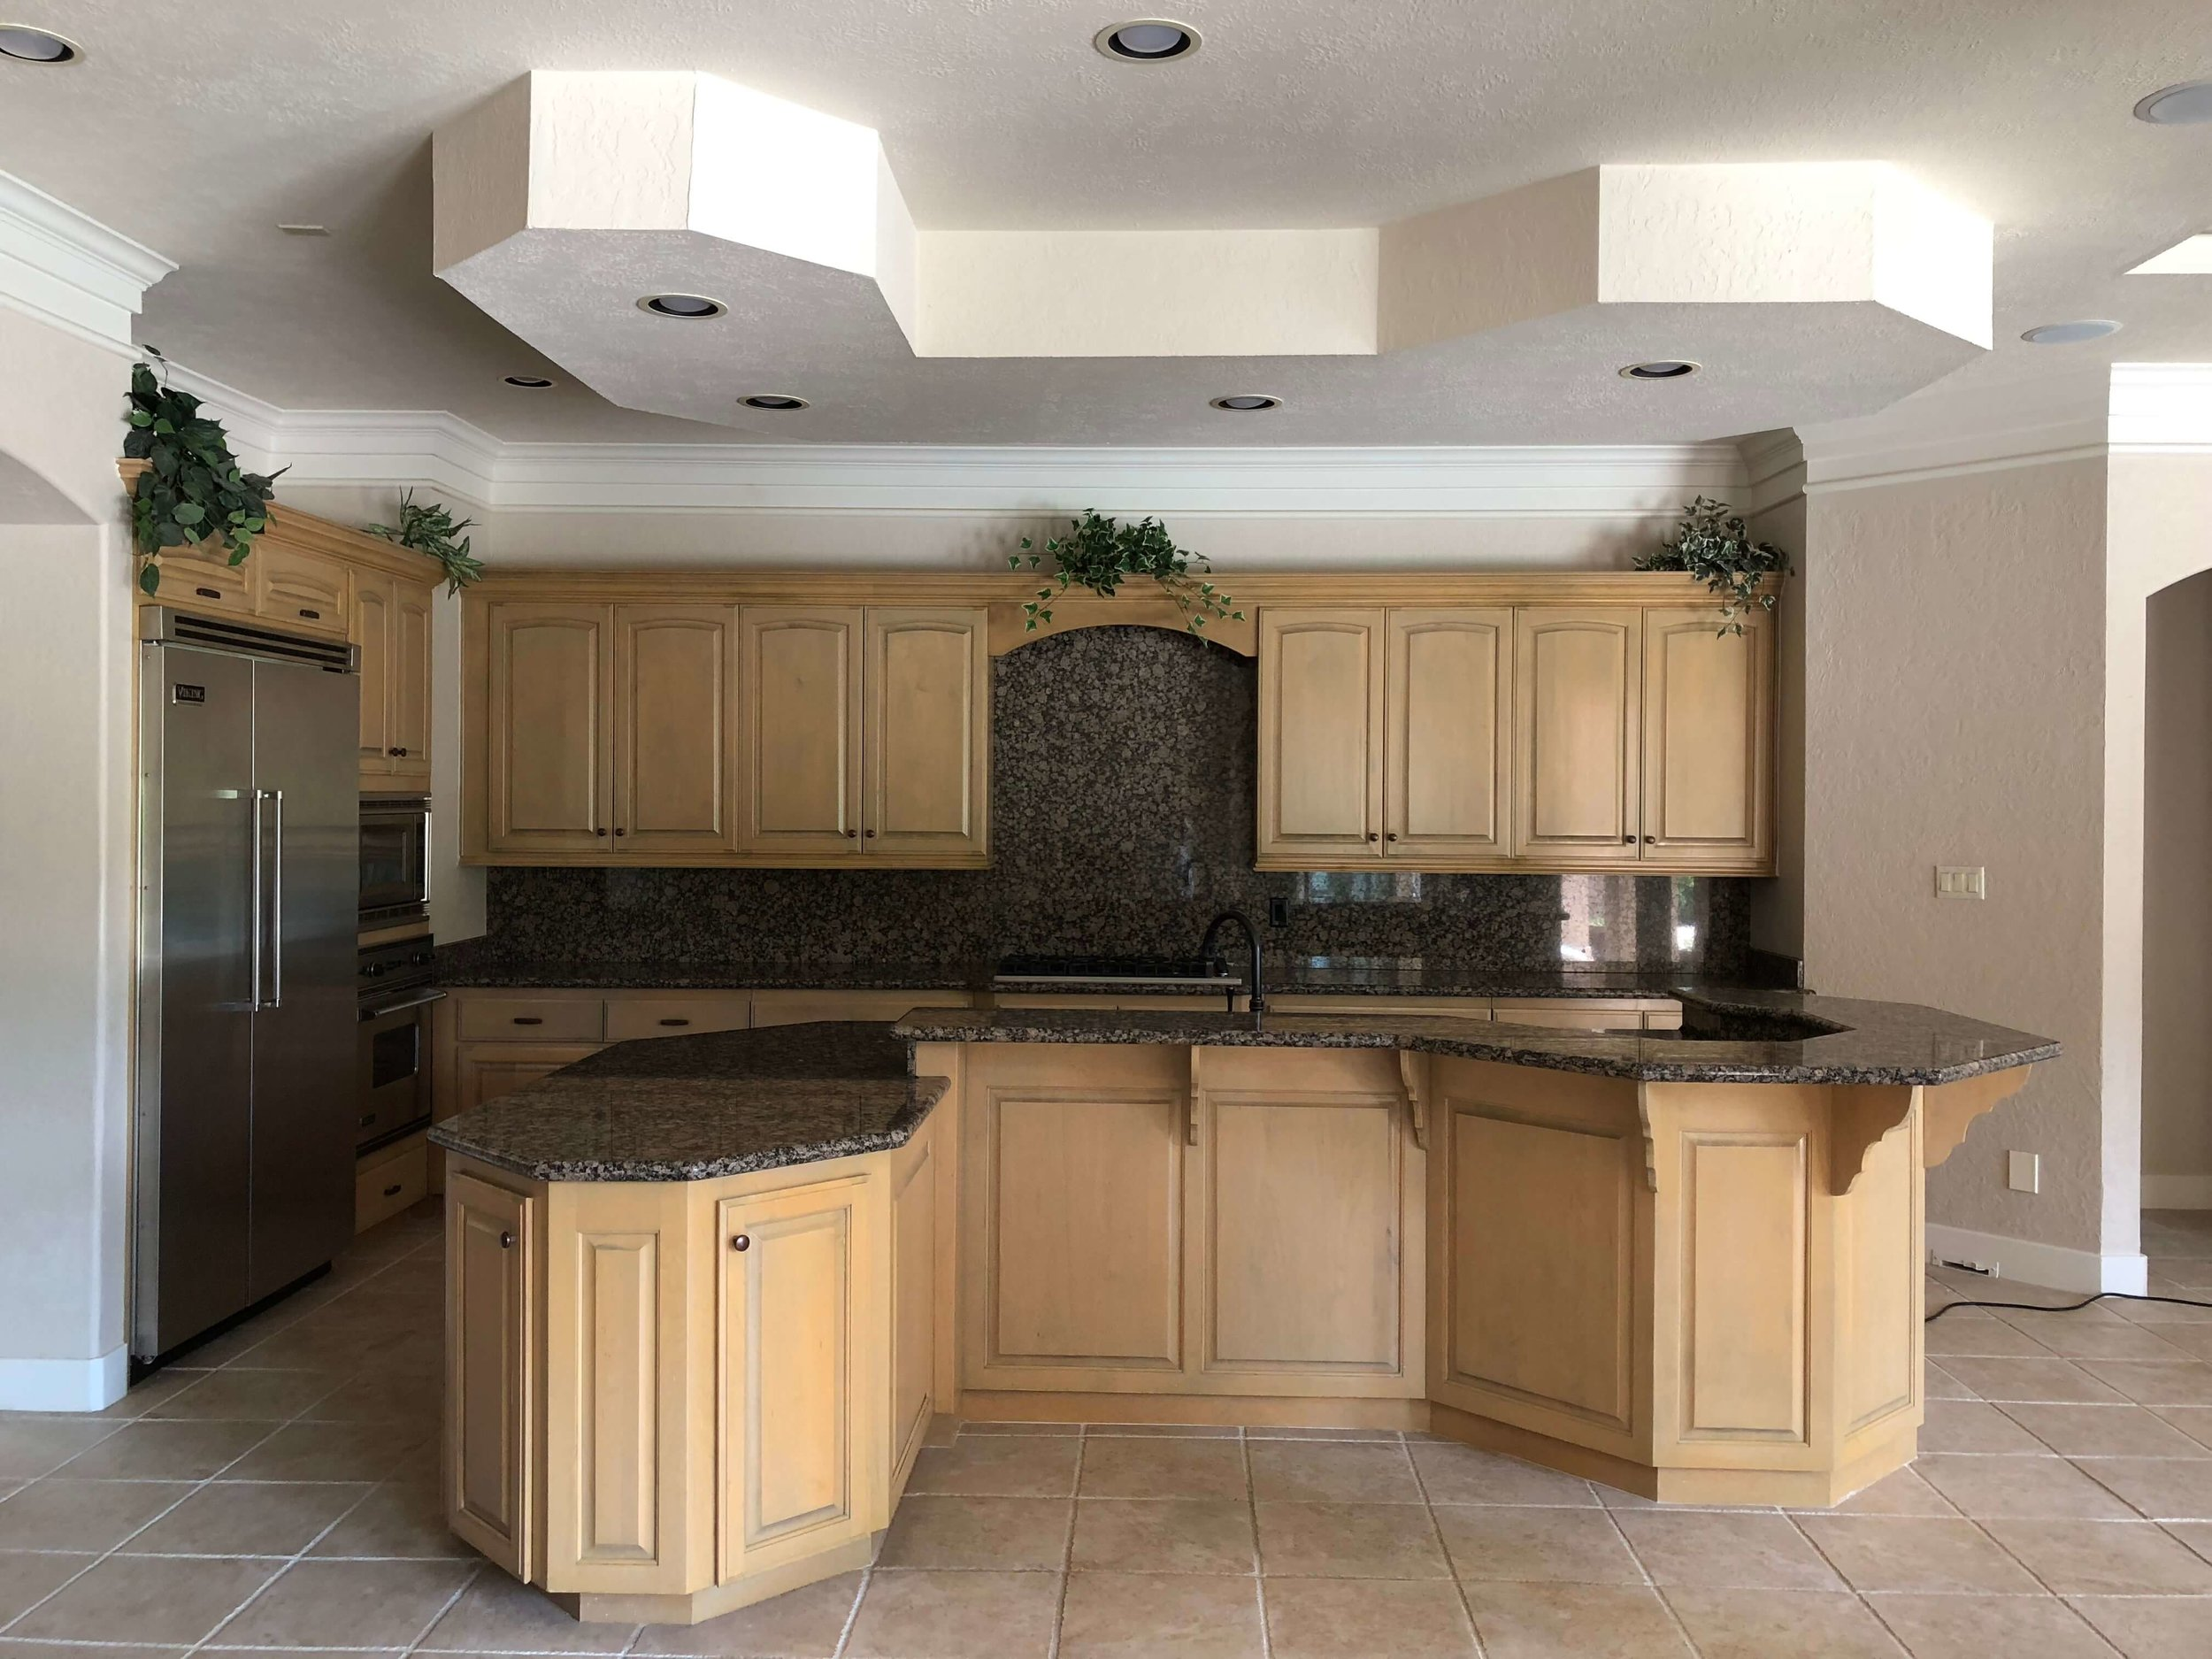 BEFORE - Kitchen Remodel in house to sell